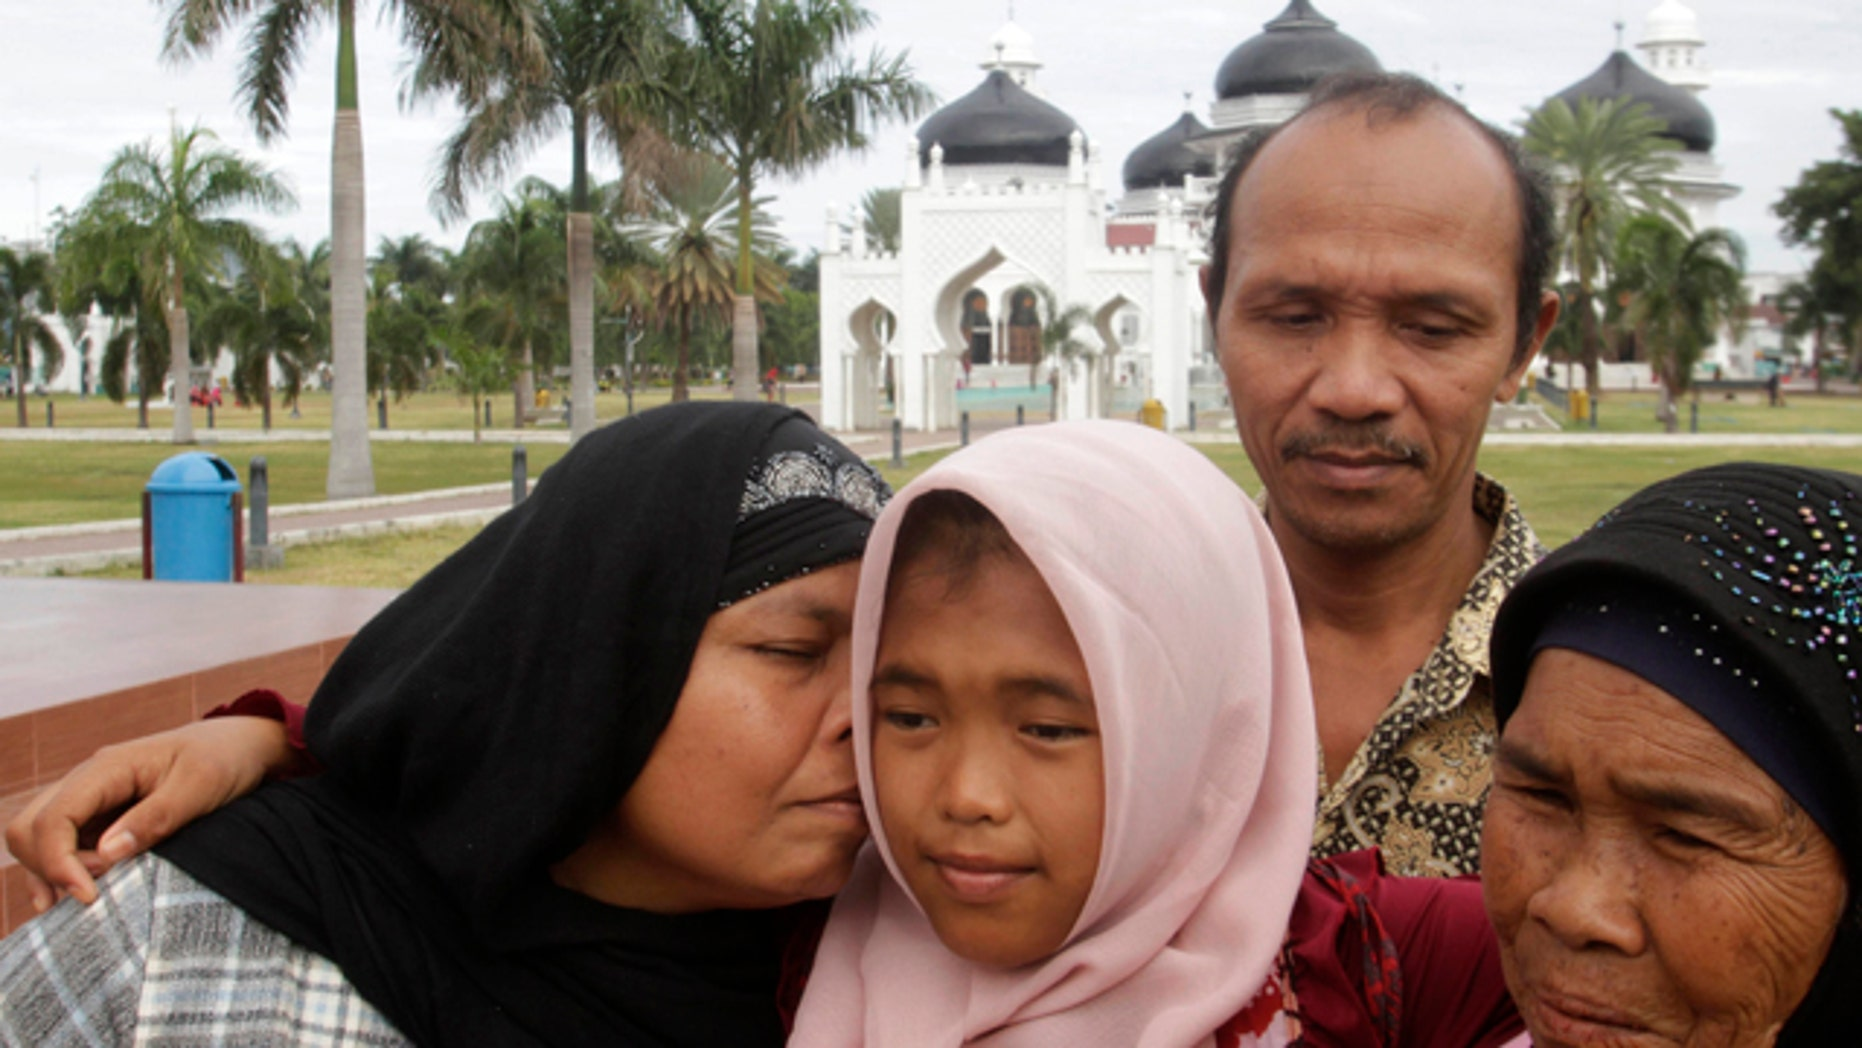 Raudhatul Jannah, was lost after being swept into the sea during the 2004 Indian Ocean tsunami. She was been found alive and living with a foster mother. She was reunited with her biological parents this week.   (REUTERS/Junaidi Hanafiah)